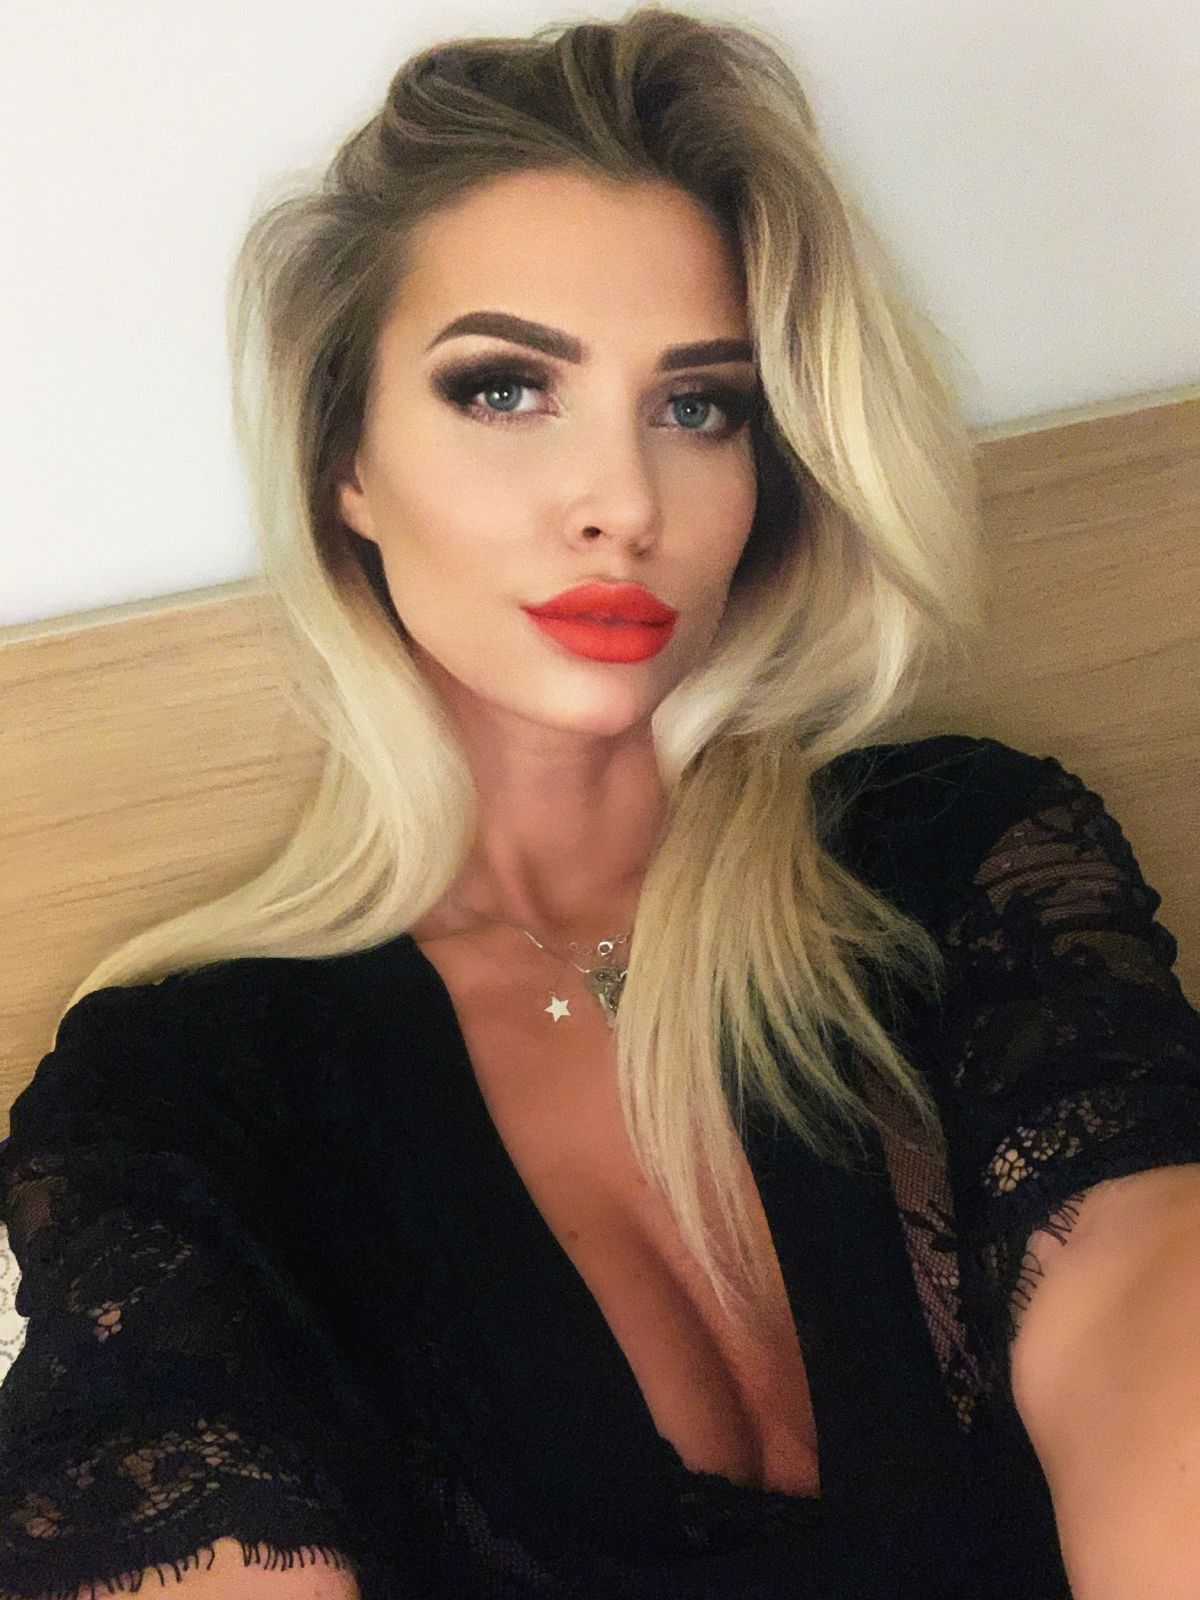 Liara photos and videos onlyfans leaked